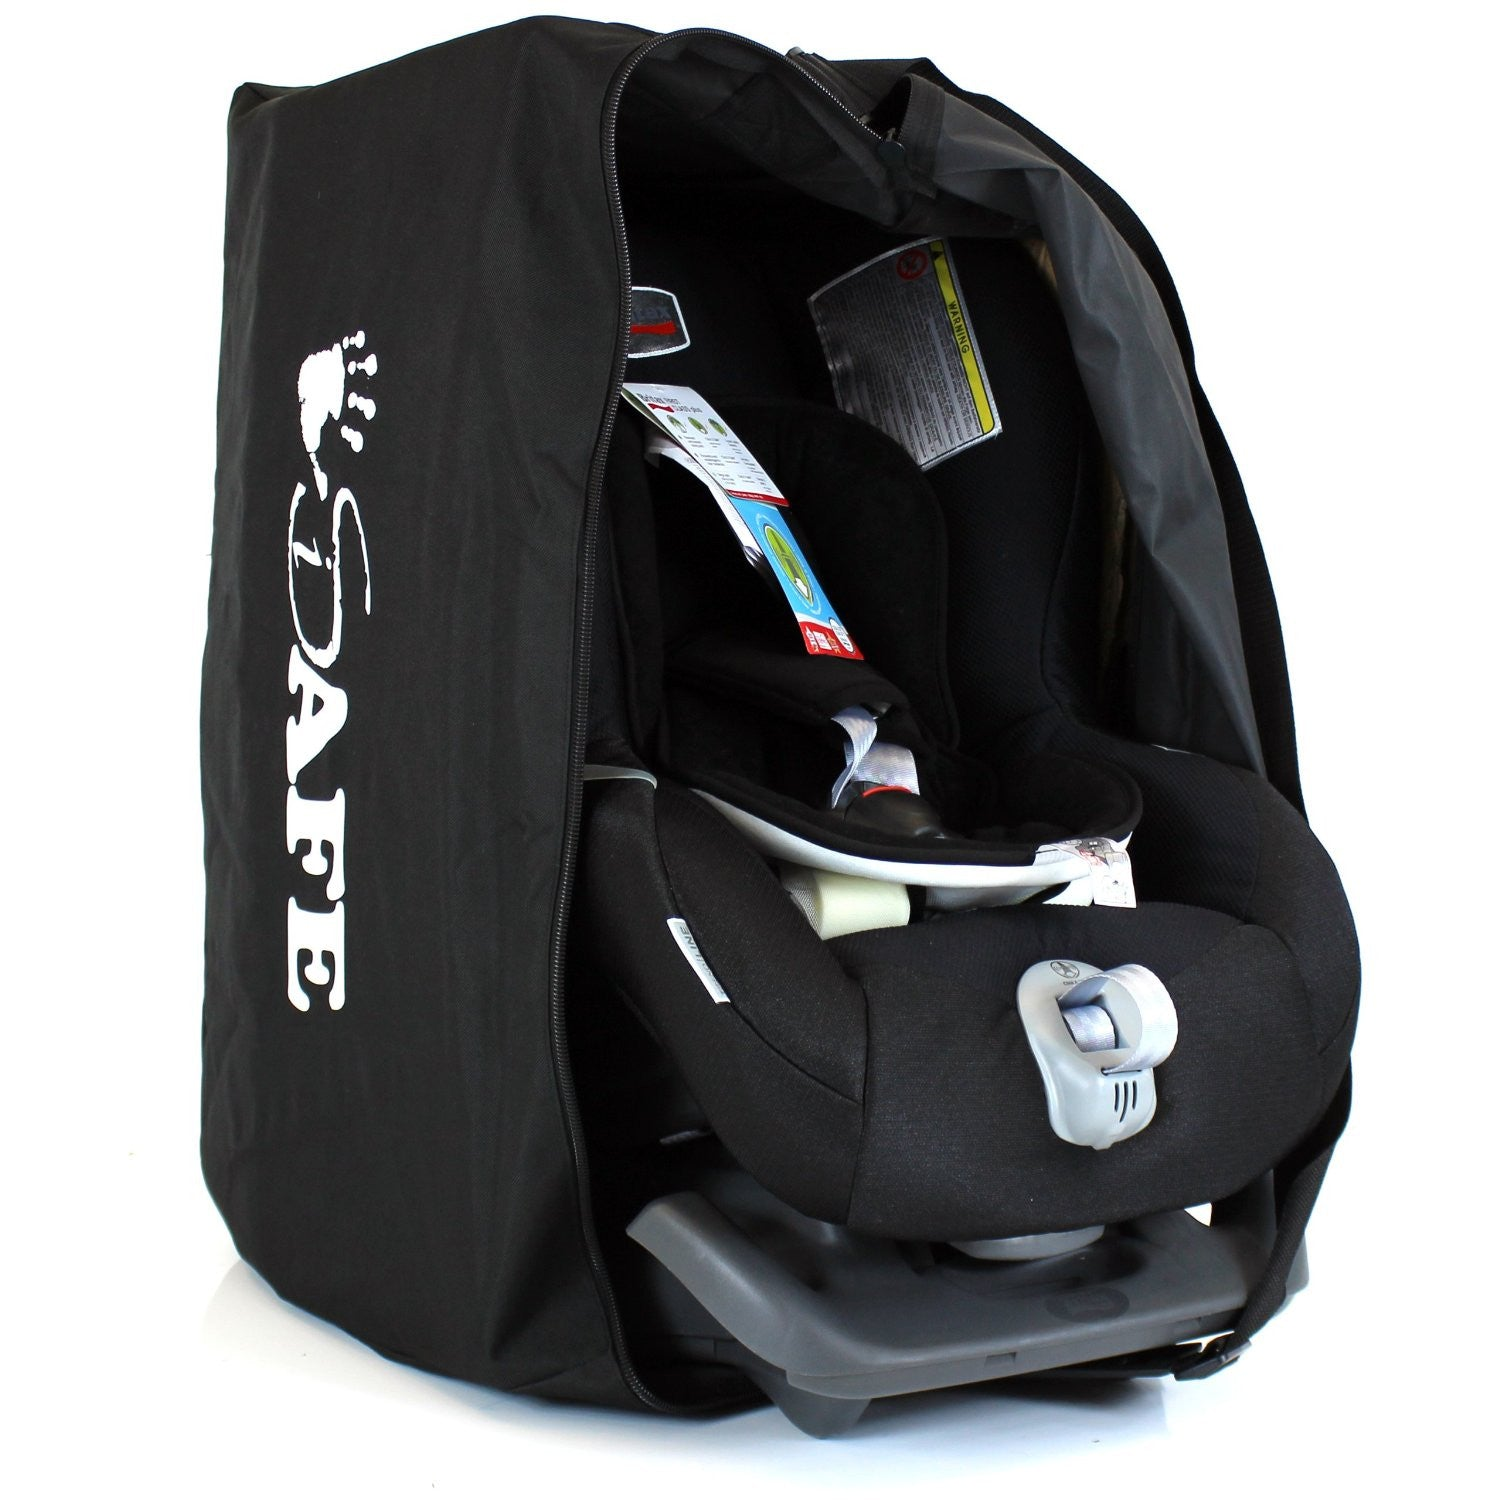 ISafe Universal Carseat Travel Storage Bag For Cybex Juno 2 Fix Car Seat